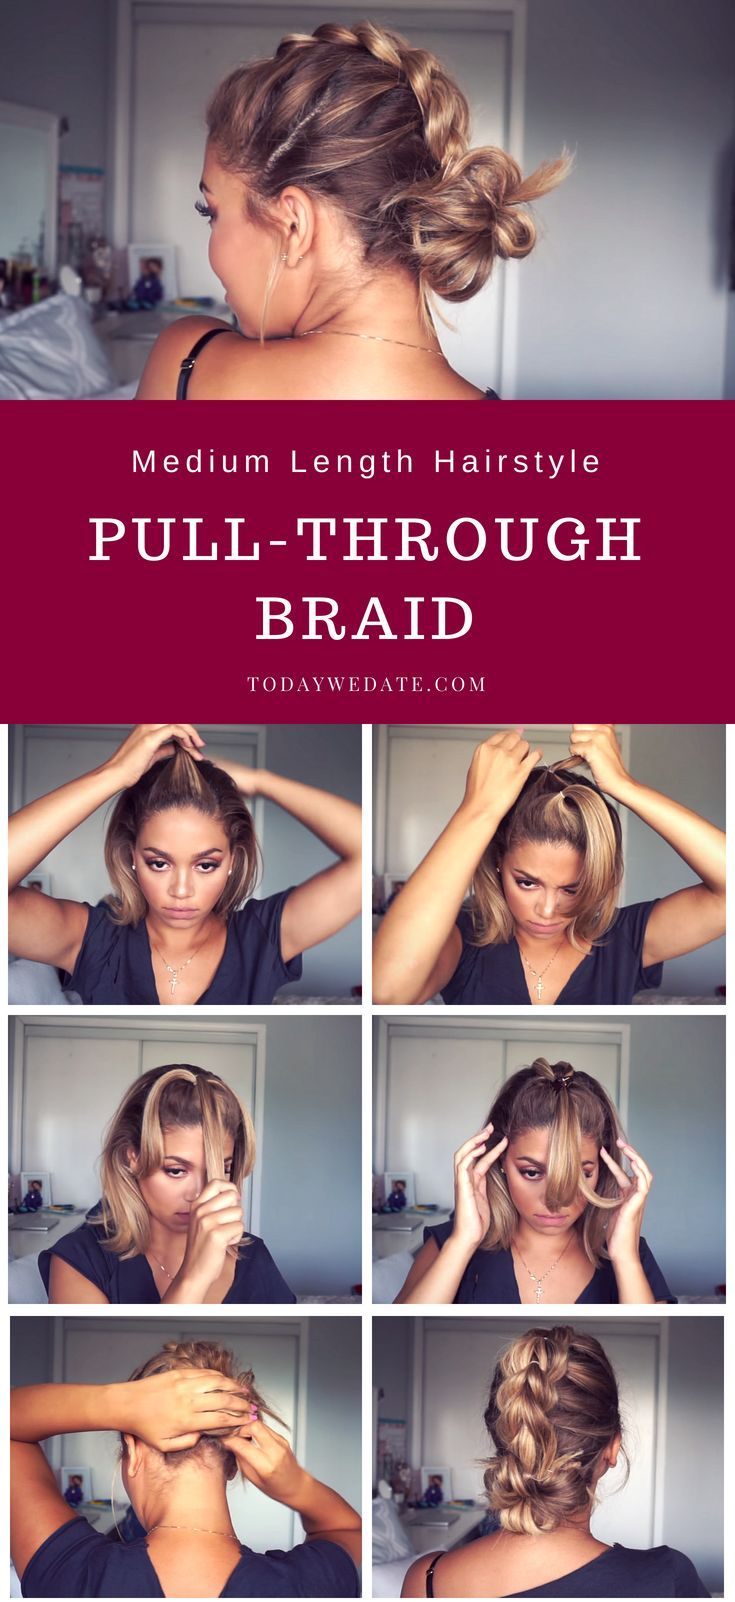 3 Super Easy Ways To Style Your Shoulder Length Hair Todaywedate Com Hairstyles Medium Length Hair Styles Braids For Medium Length Hair Medium Hair Styles